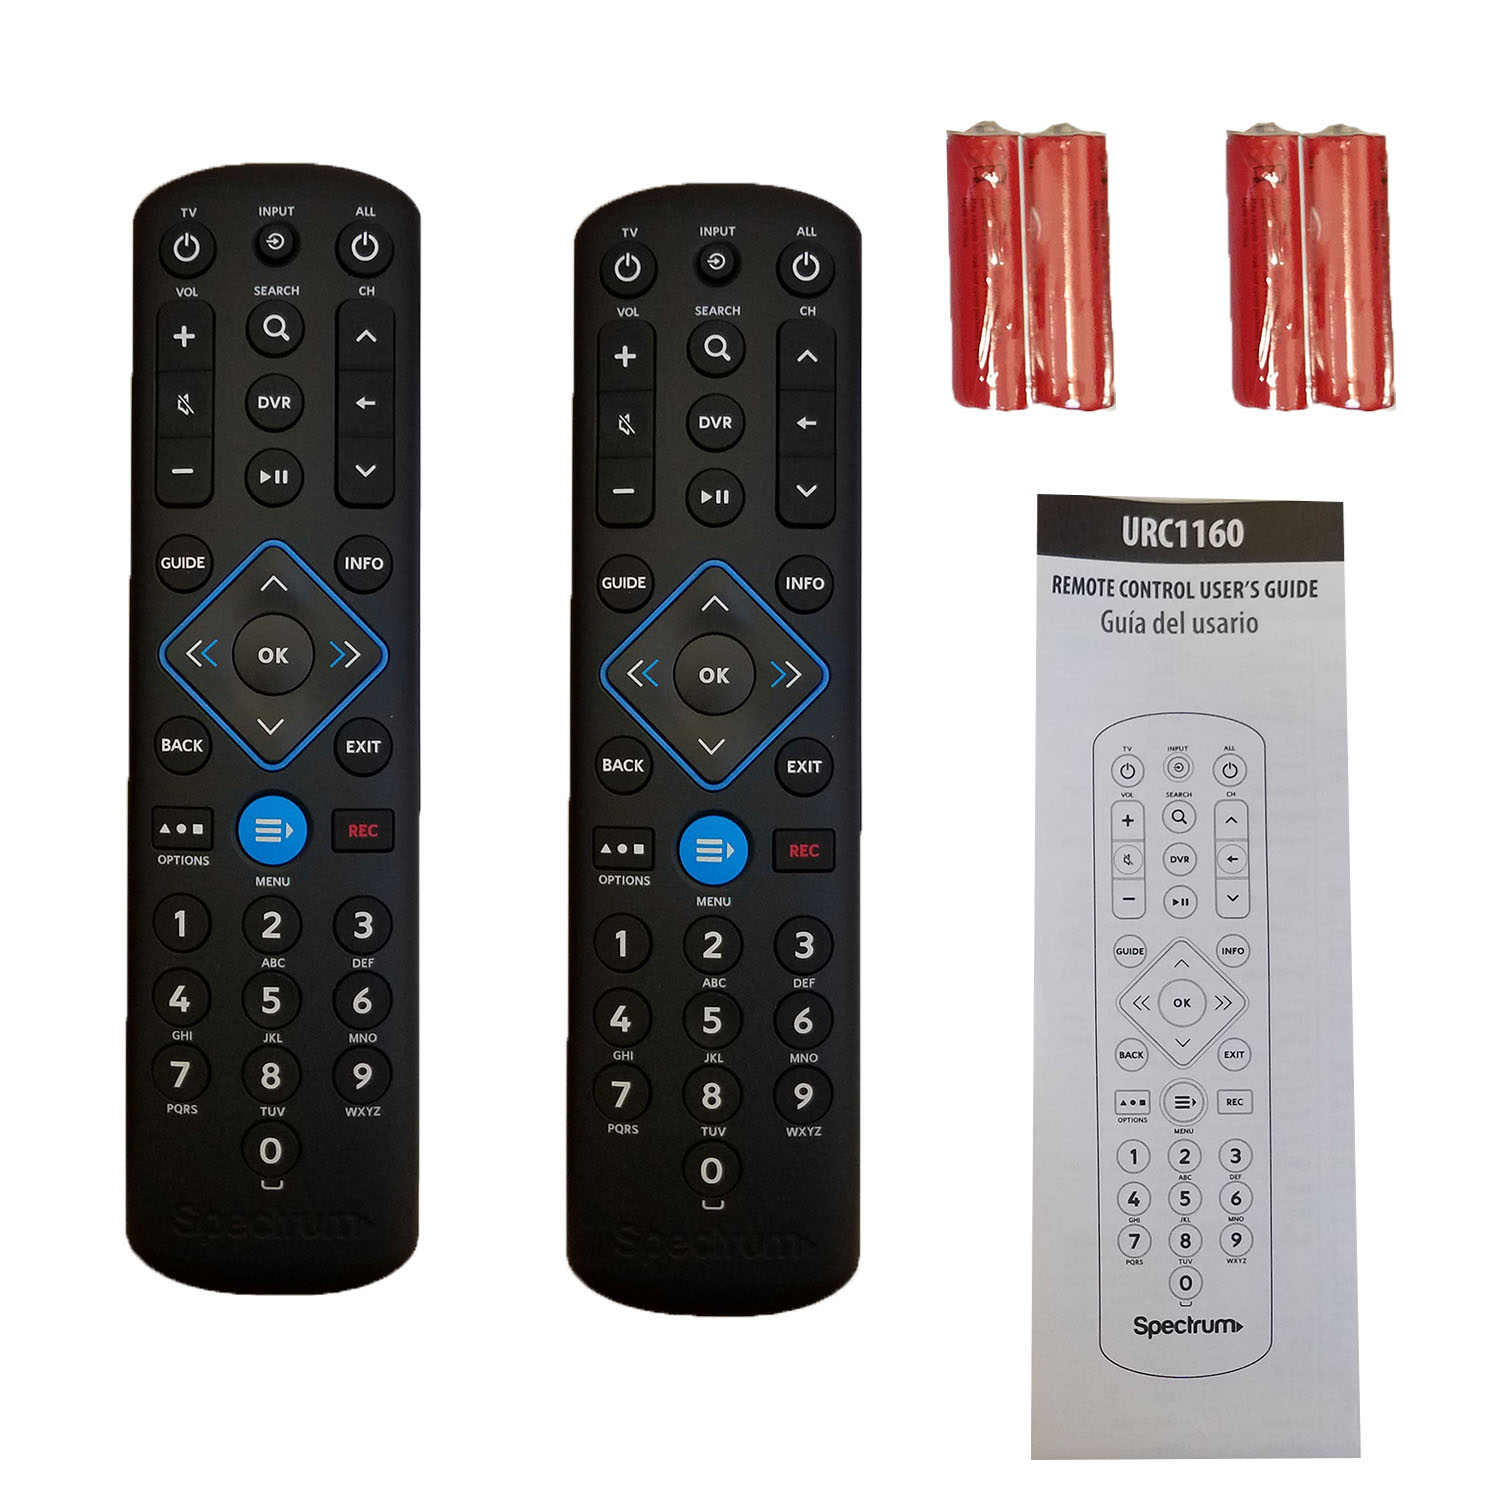 Details about 2 Spectrum Cable Box Remote Controls URC1160 New Instructions  included Fast ship